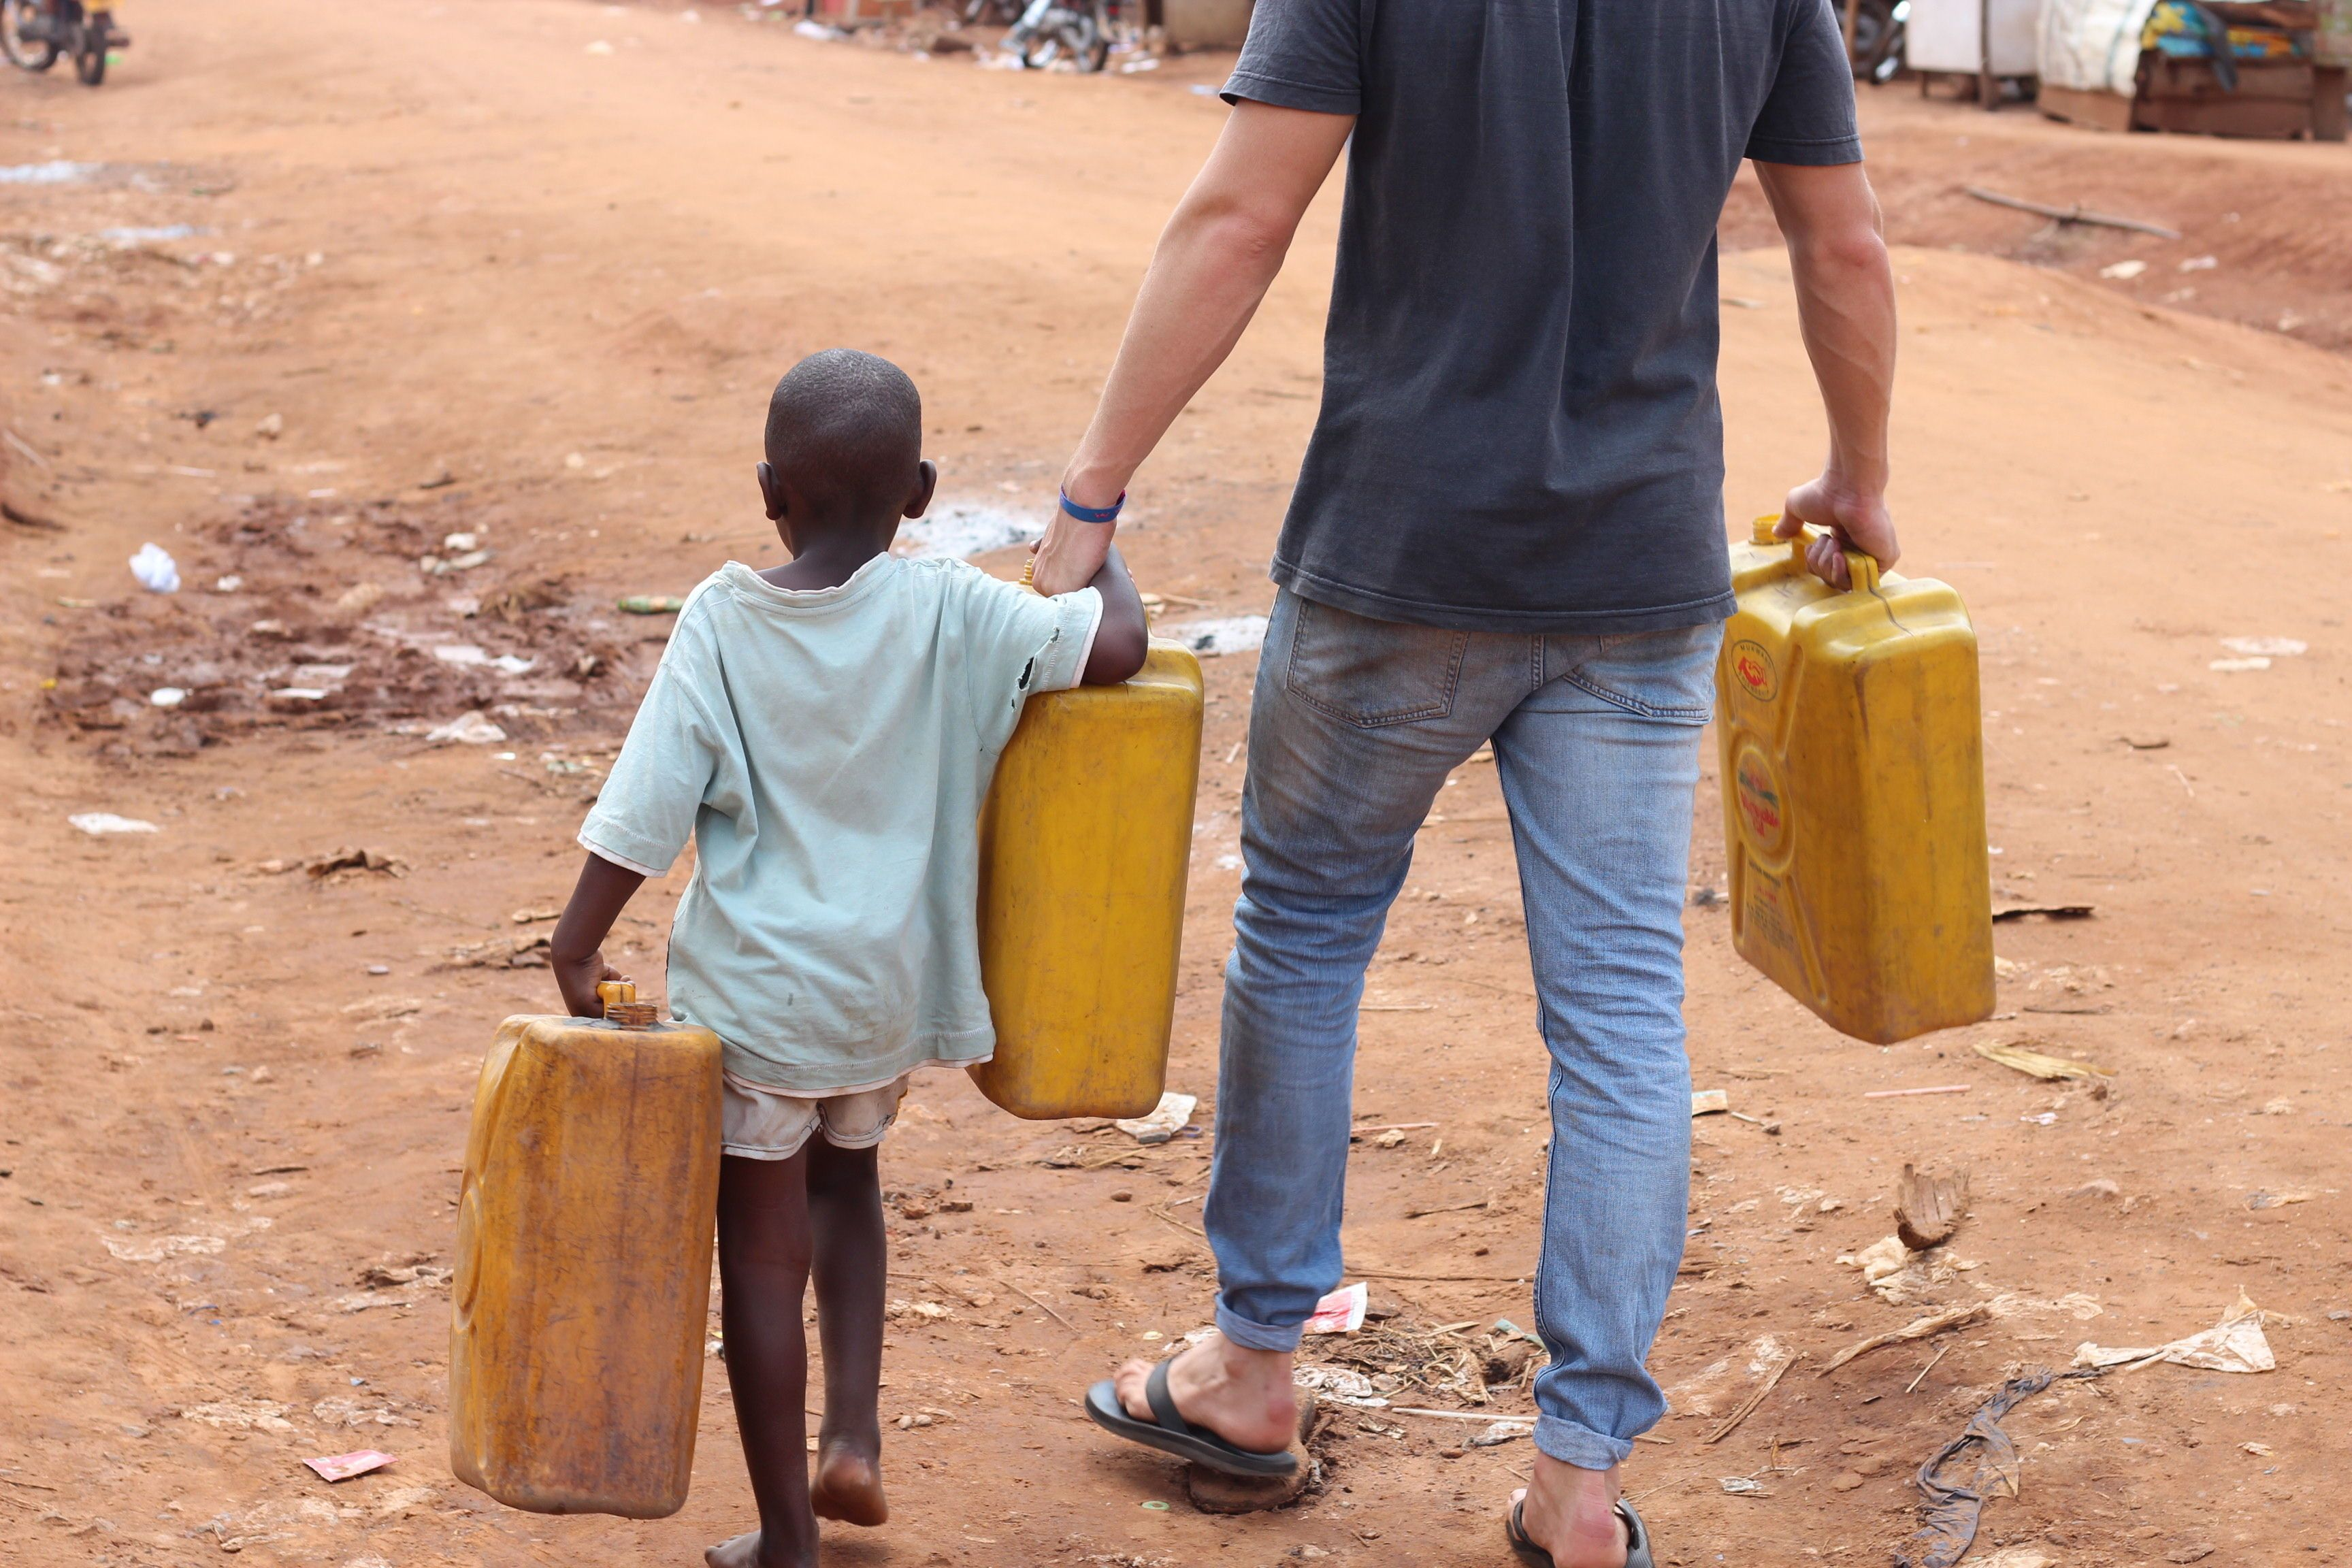 Helping hand. Sponsorship means lending a helping hand to